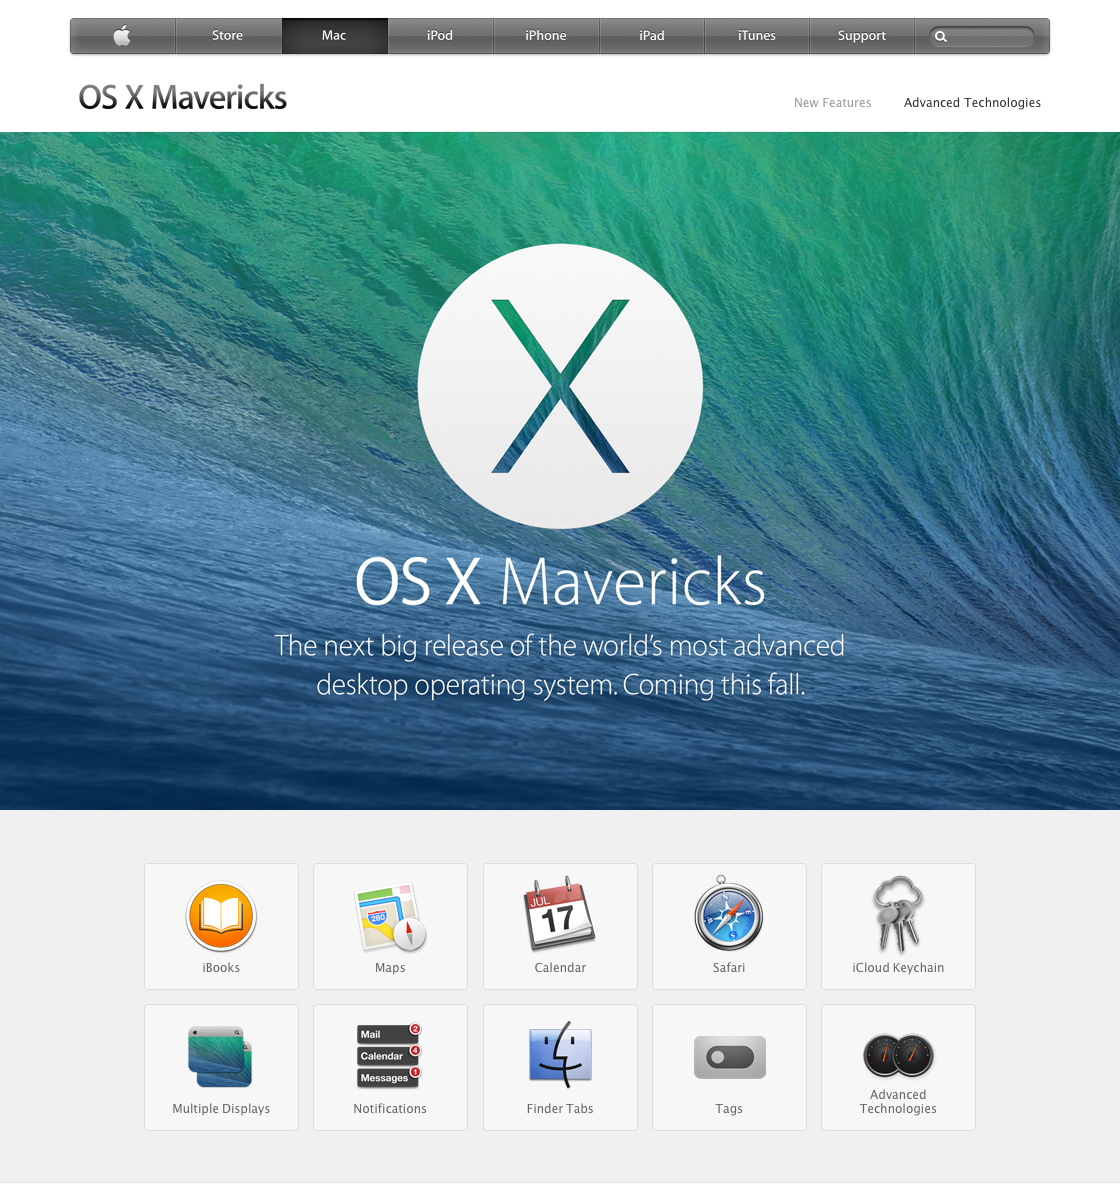 The Mavericks preview section of apple.com.